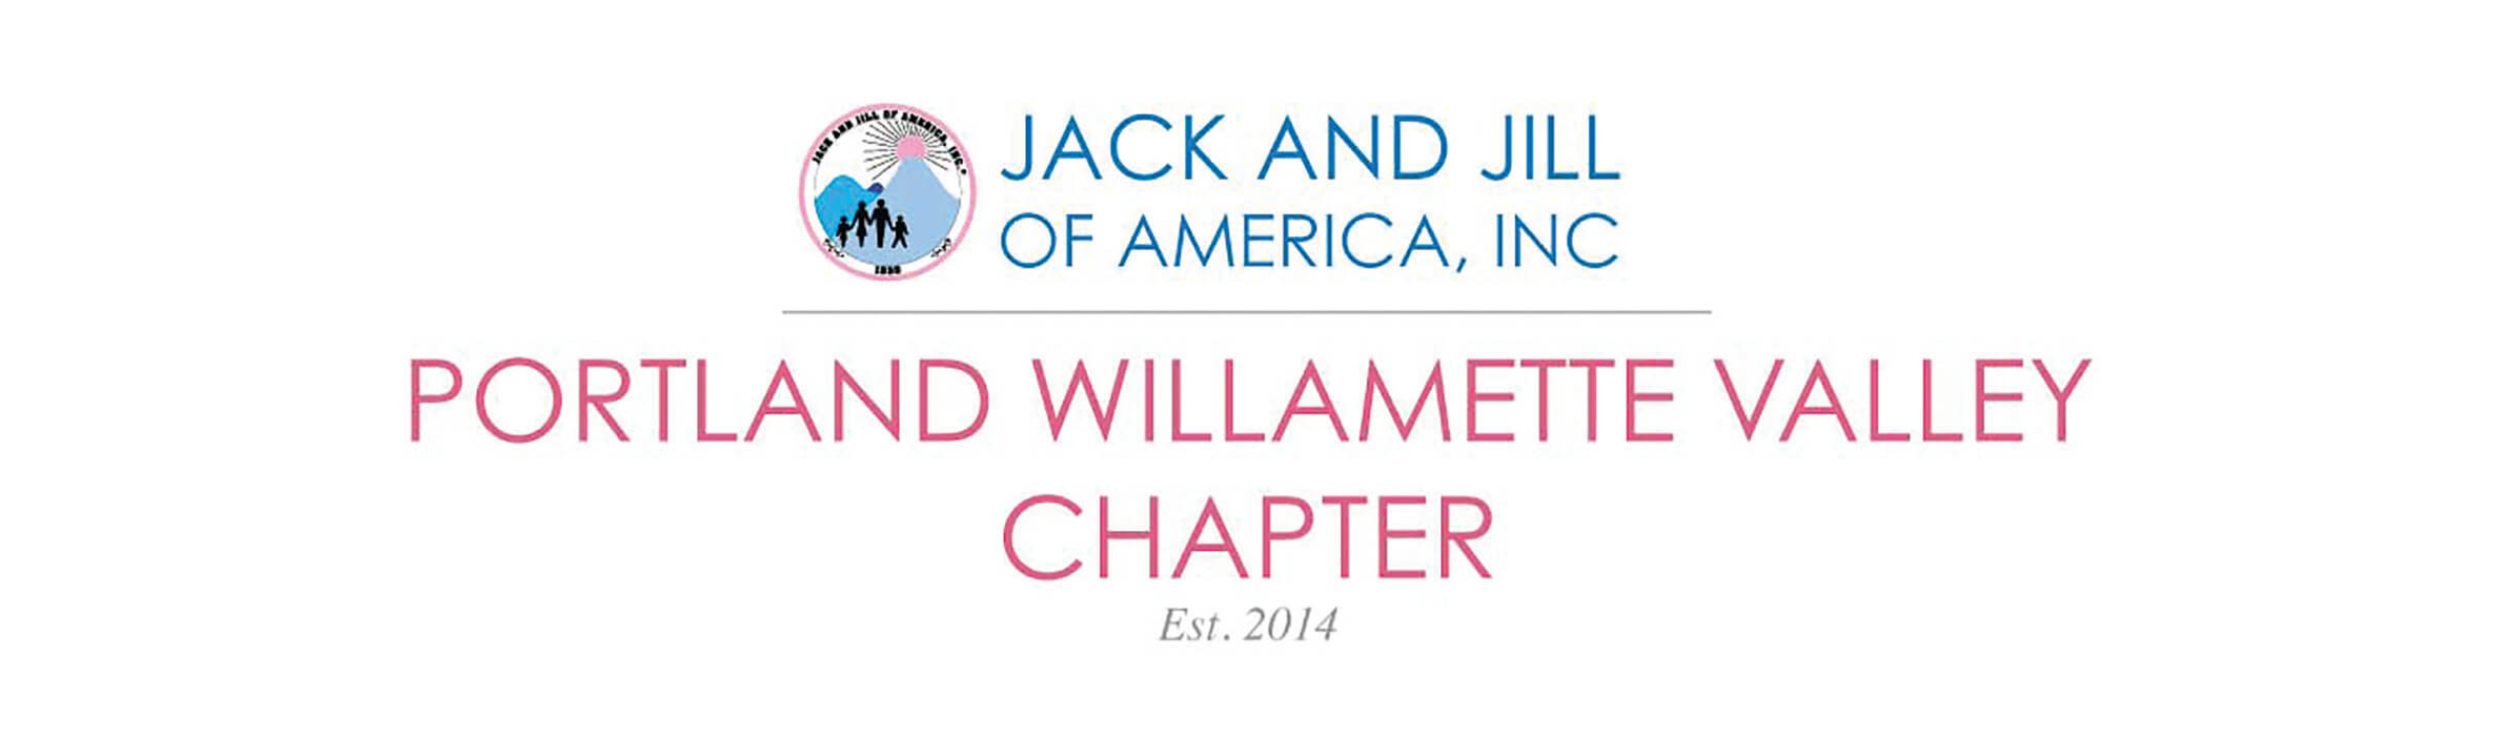 Jack and Jill Portland Willamette Valley Chapter